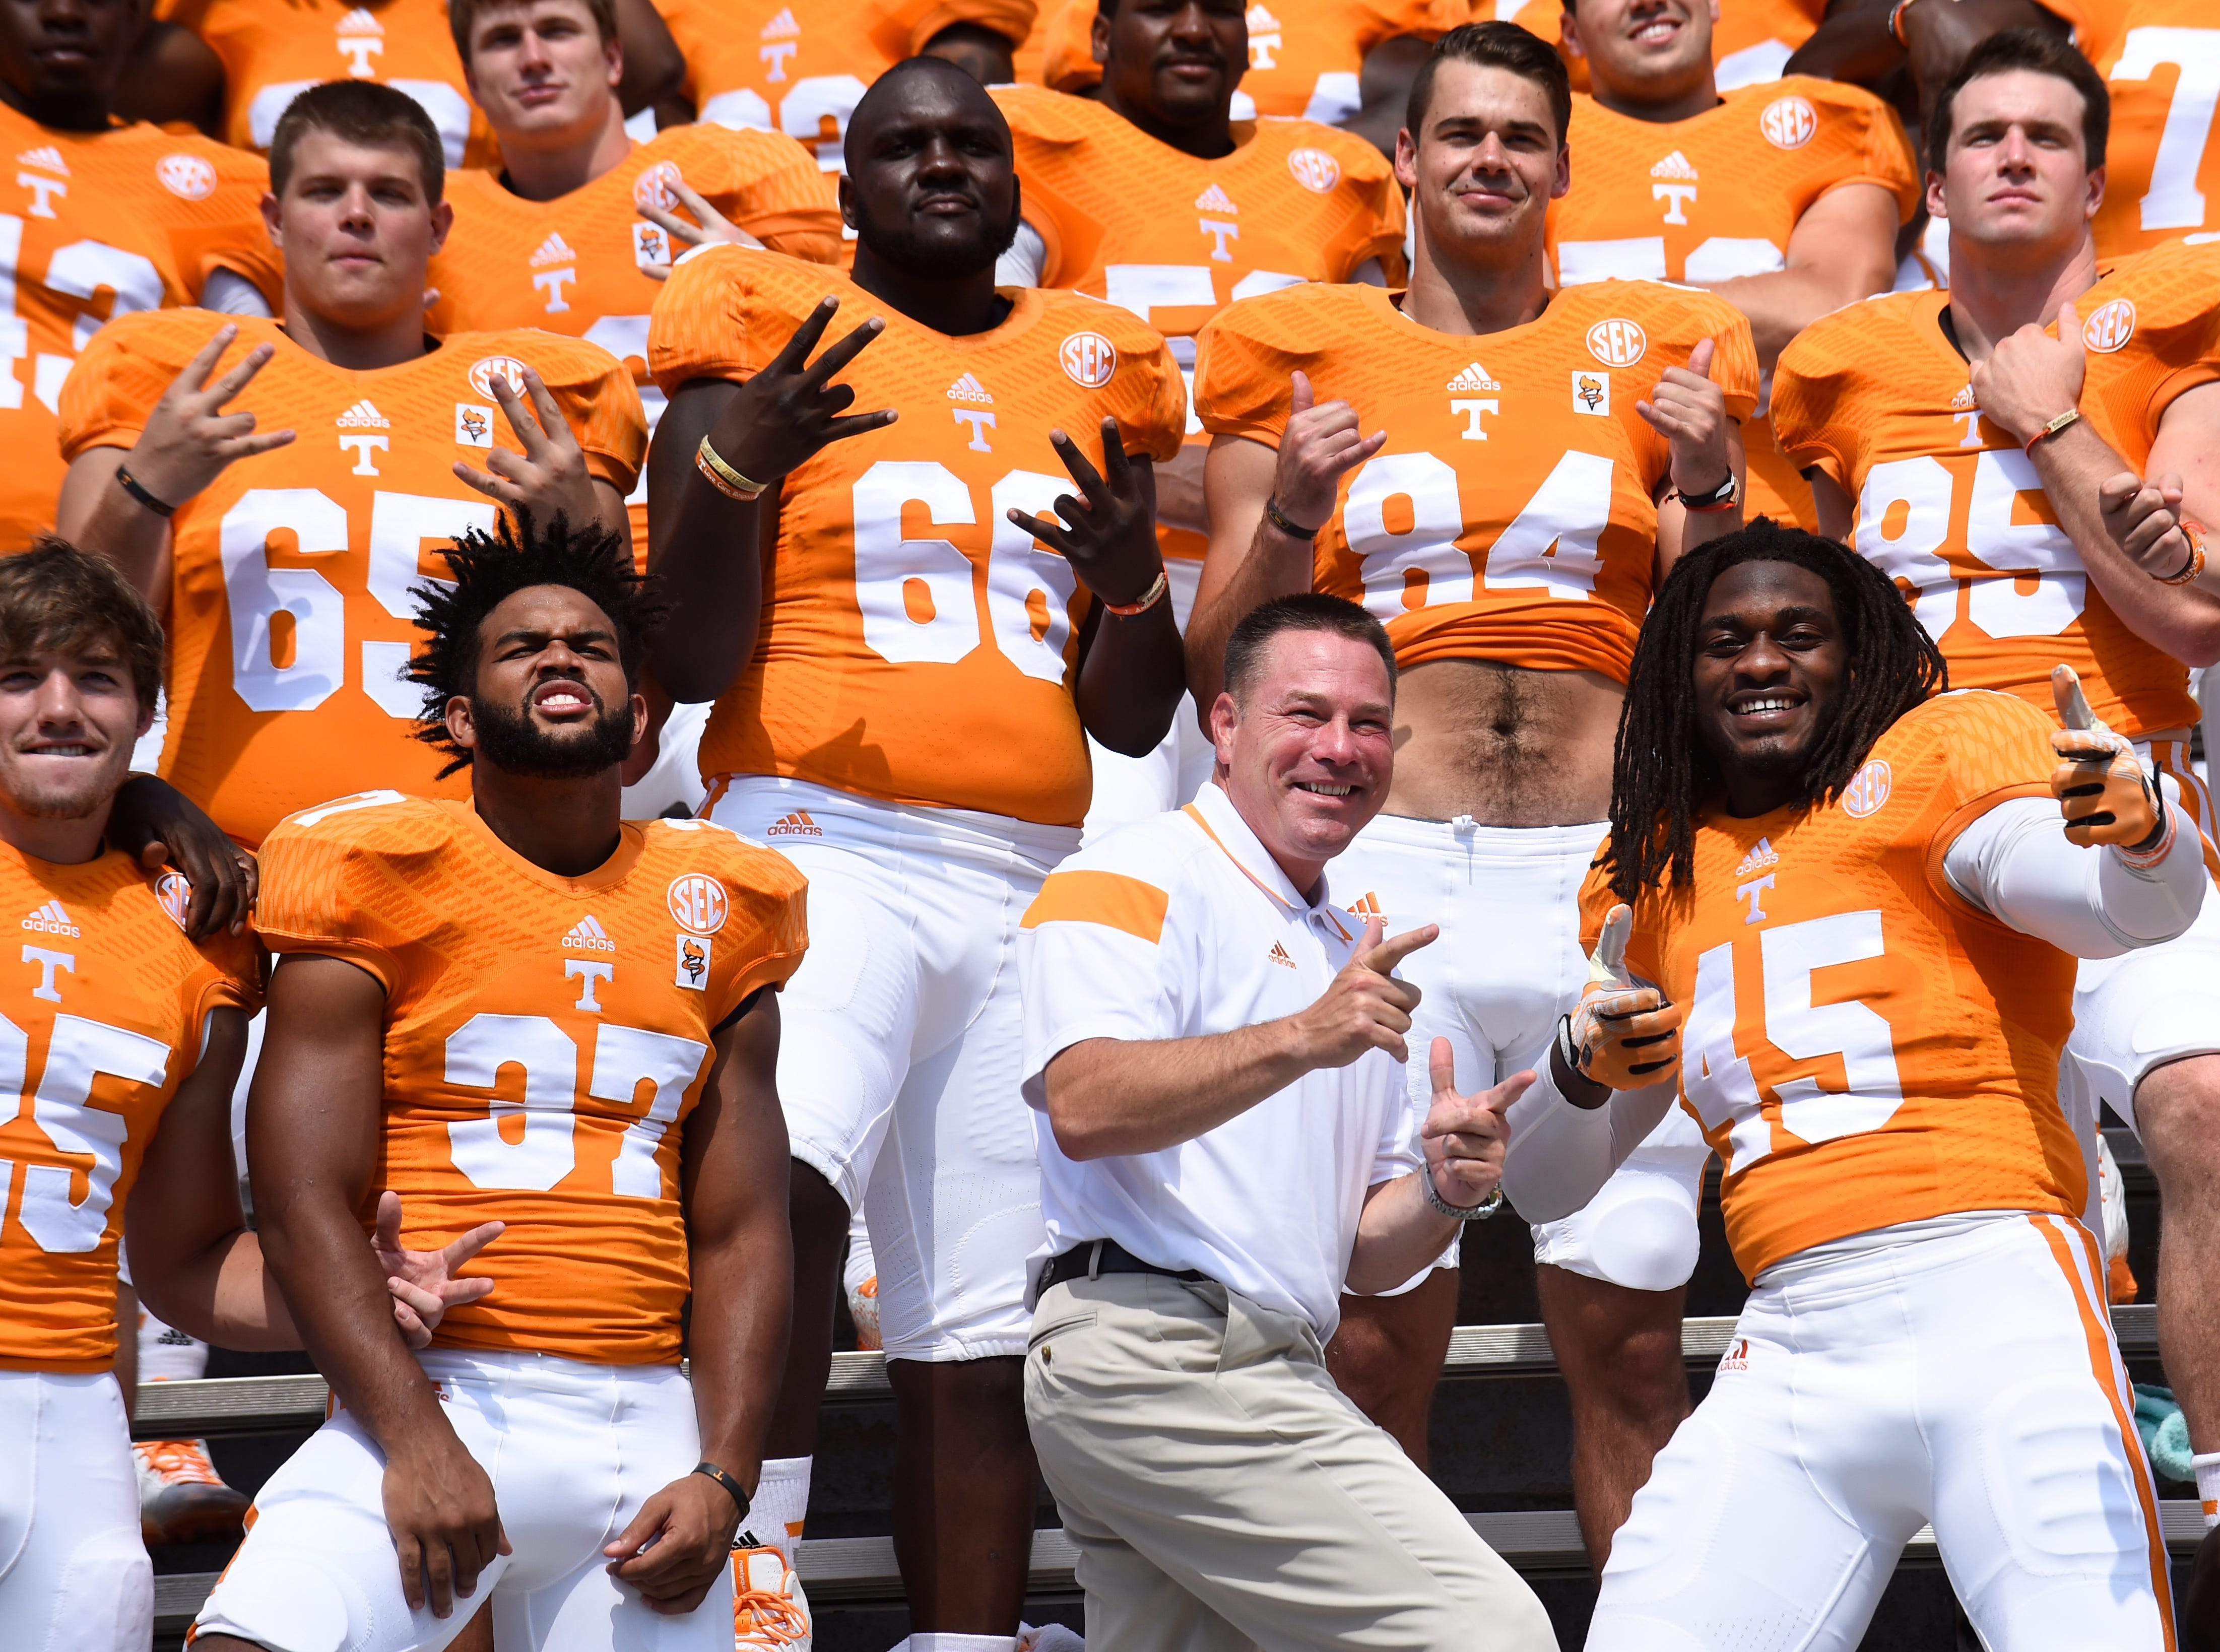 University of Tennessee head football coach Butch Jones, center, poses with players during the team photo, left is Brian Randolph, right is A.J. Johnson, during media day at Neyland Stadium Thursday, Aug. 14, 2014.